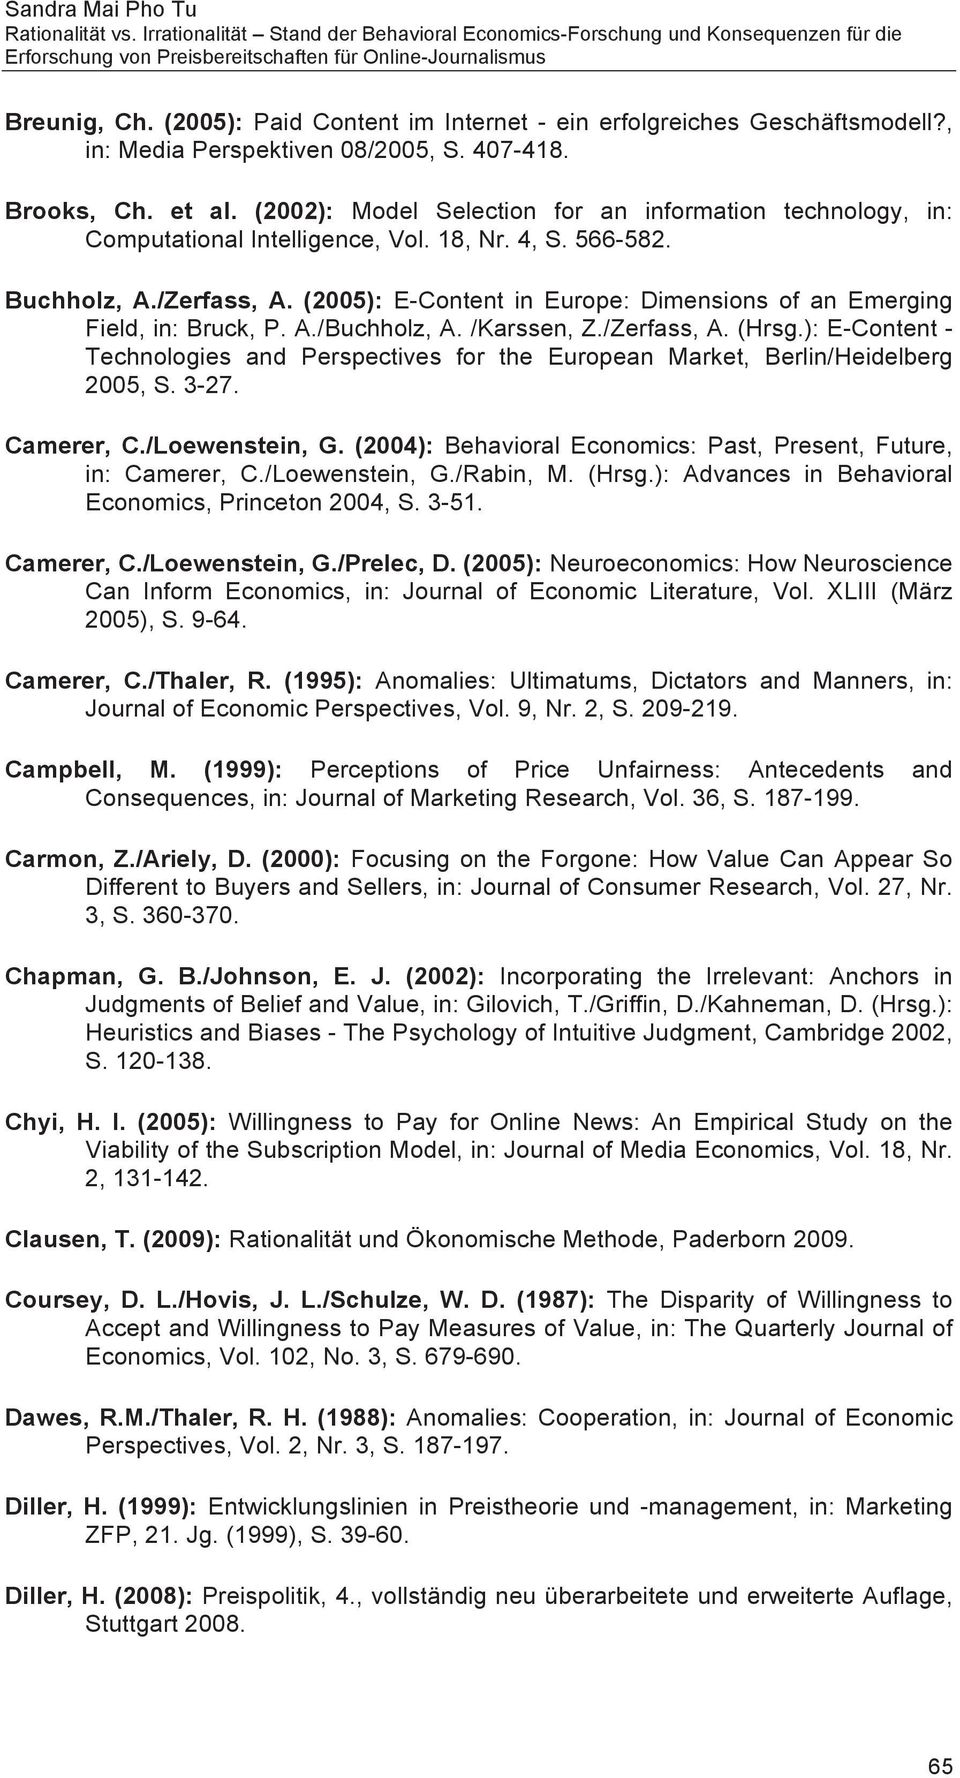 (2005): E-Content in Europe: Dimensions of an Emerging Field, in: Bruck, P. A./Buchholz, A. /Karssen, Z./Zerfass, A. (Hrsg.